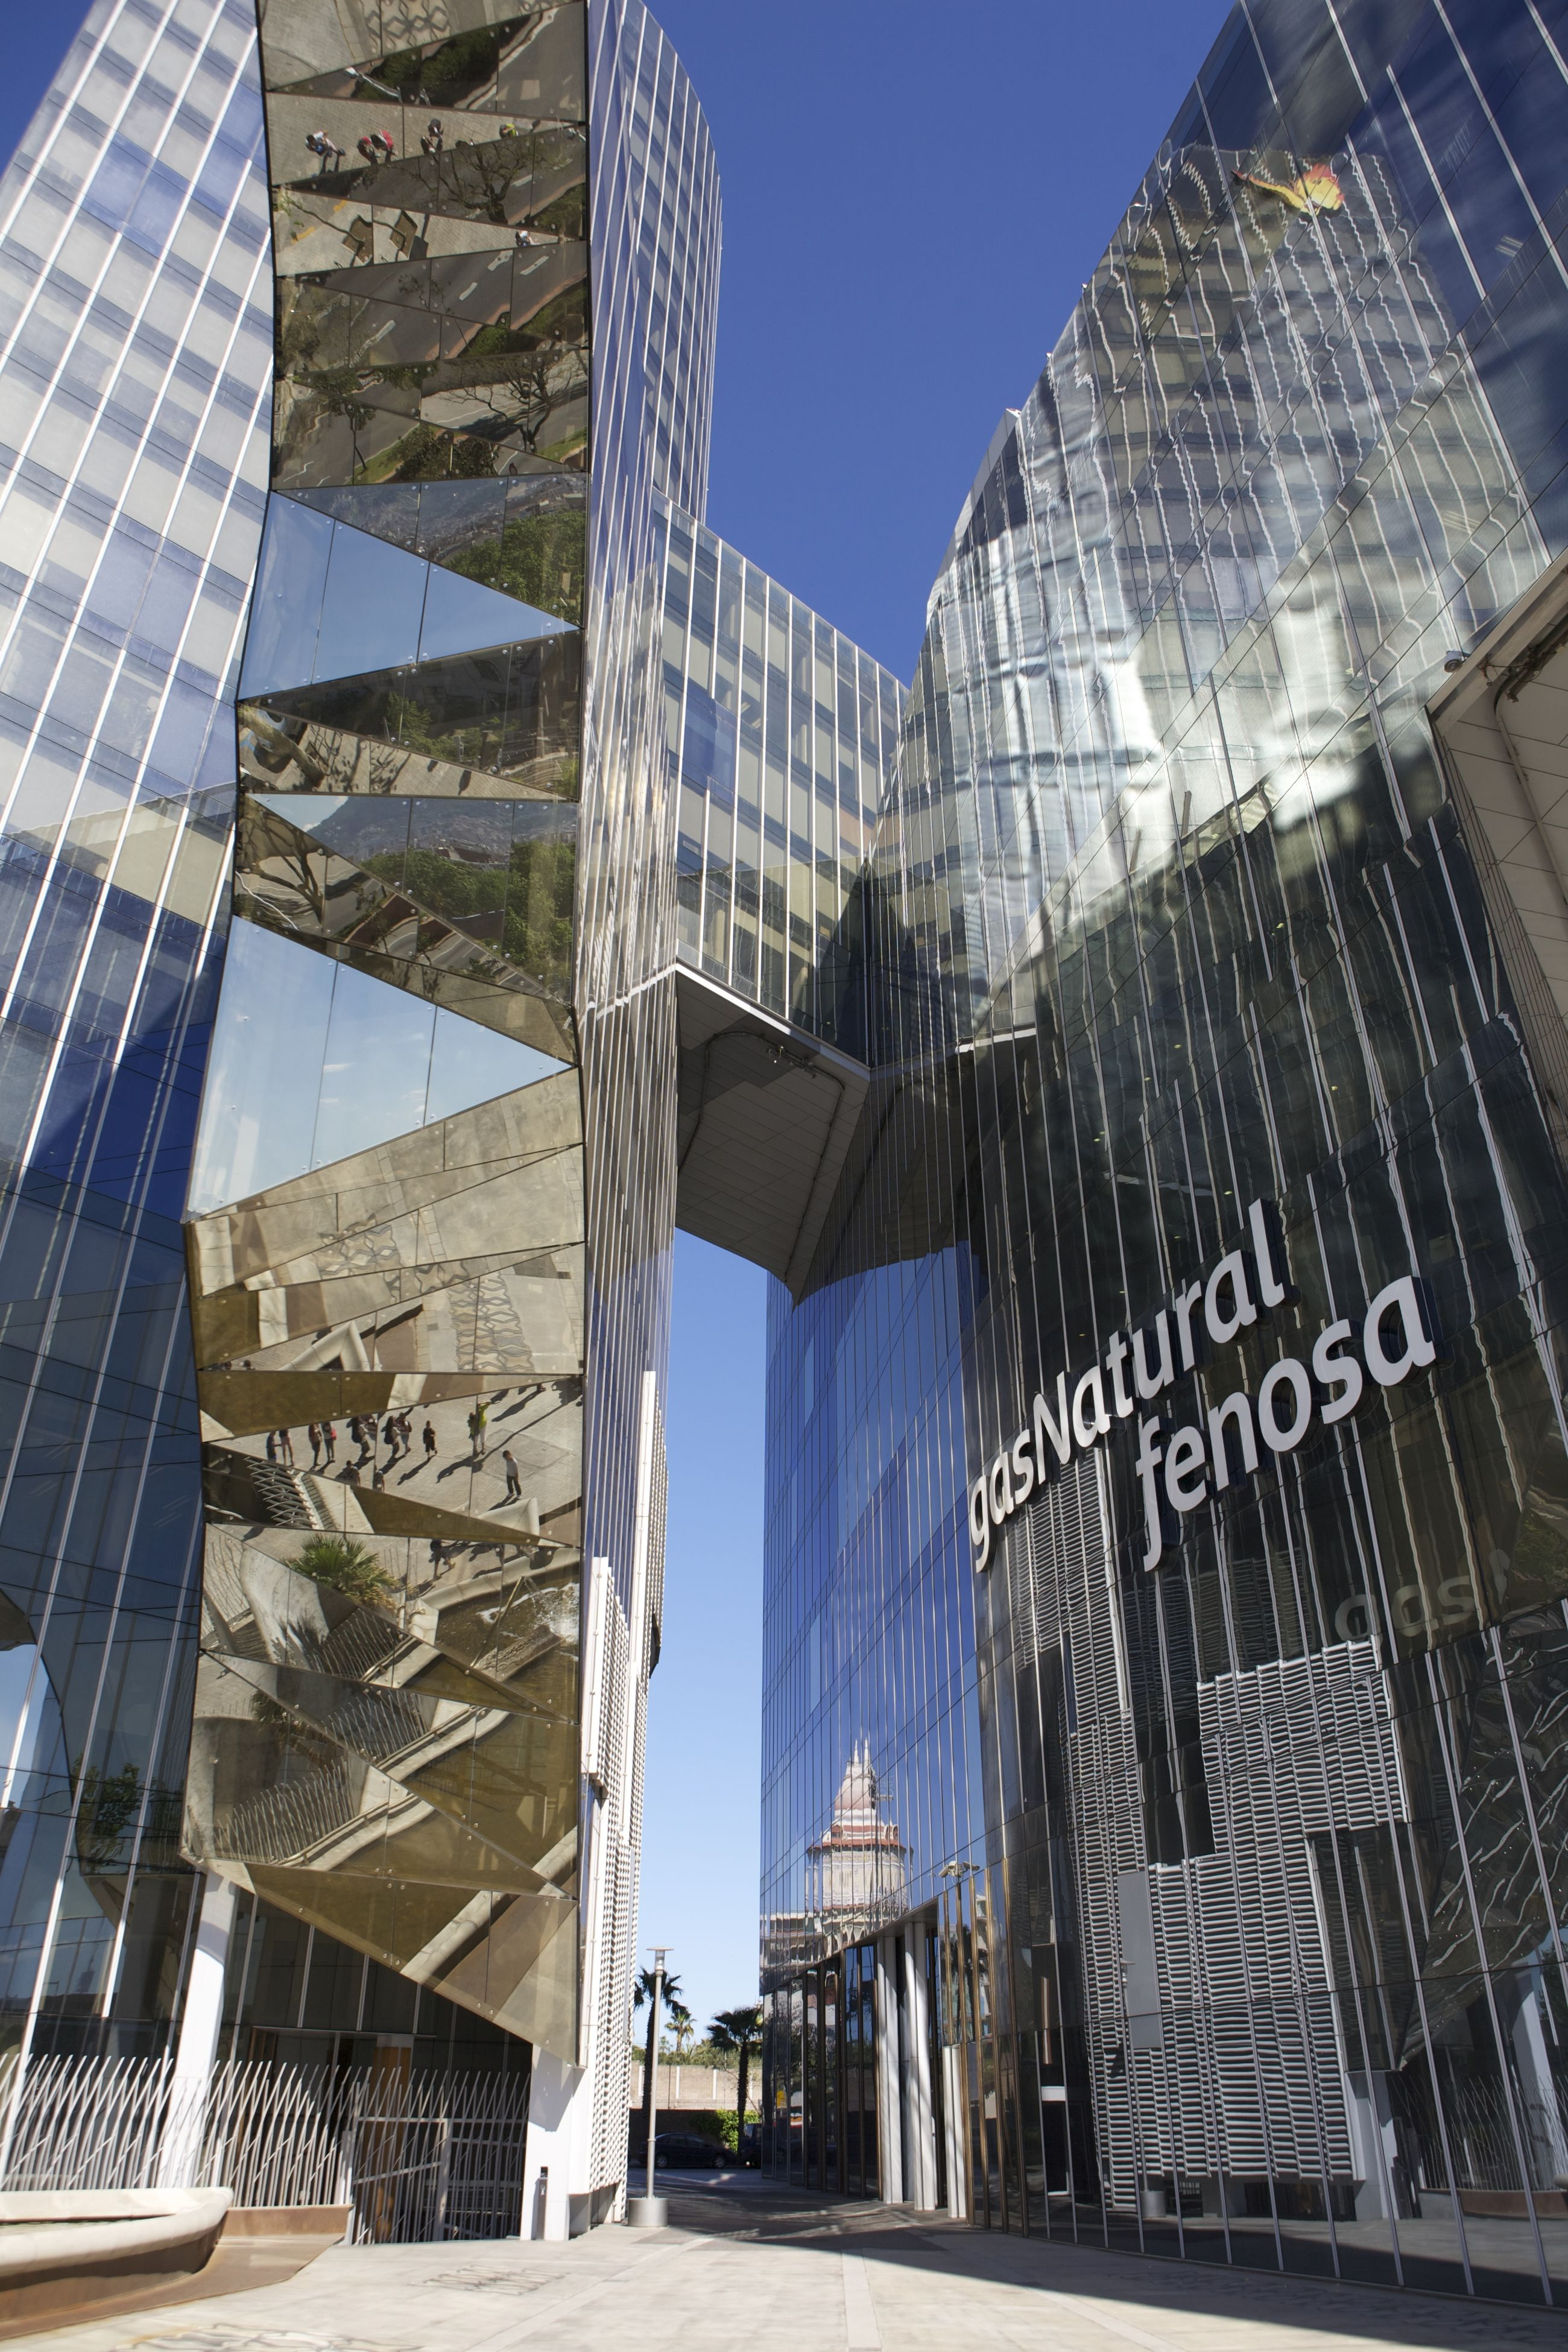 building exterior, architecture, built structure, city, modern, office building, skyscraper, building, tall - high, tower, low angle view, glass - material, reflection, blue, city life, residential building, sunlight, day, financial district, clear sky